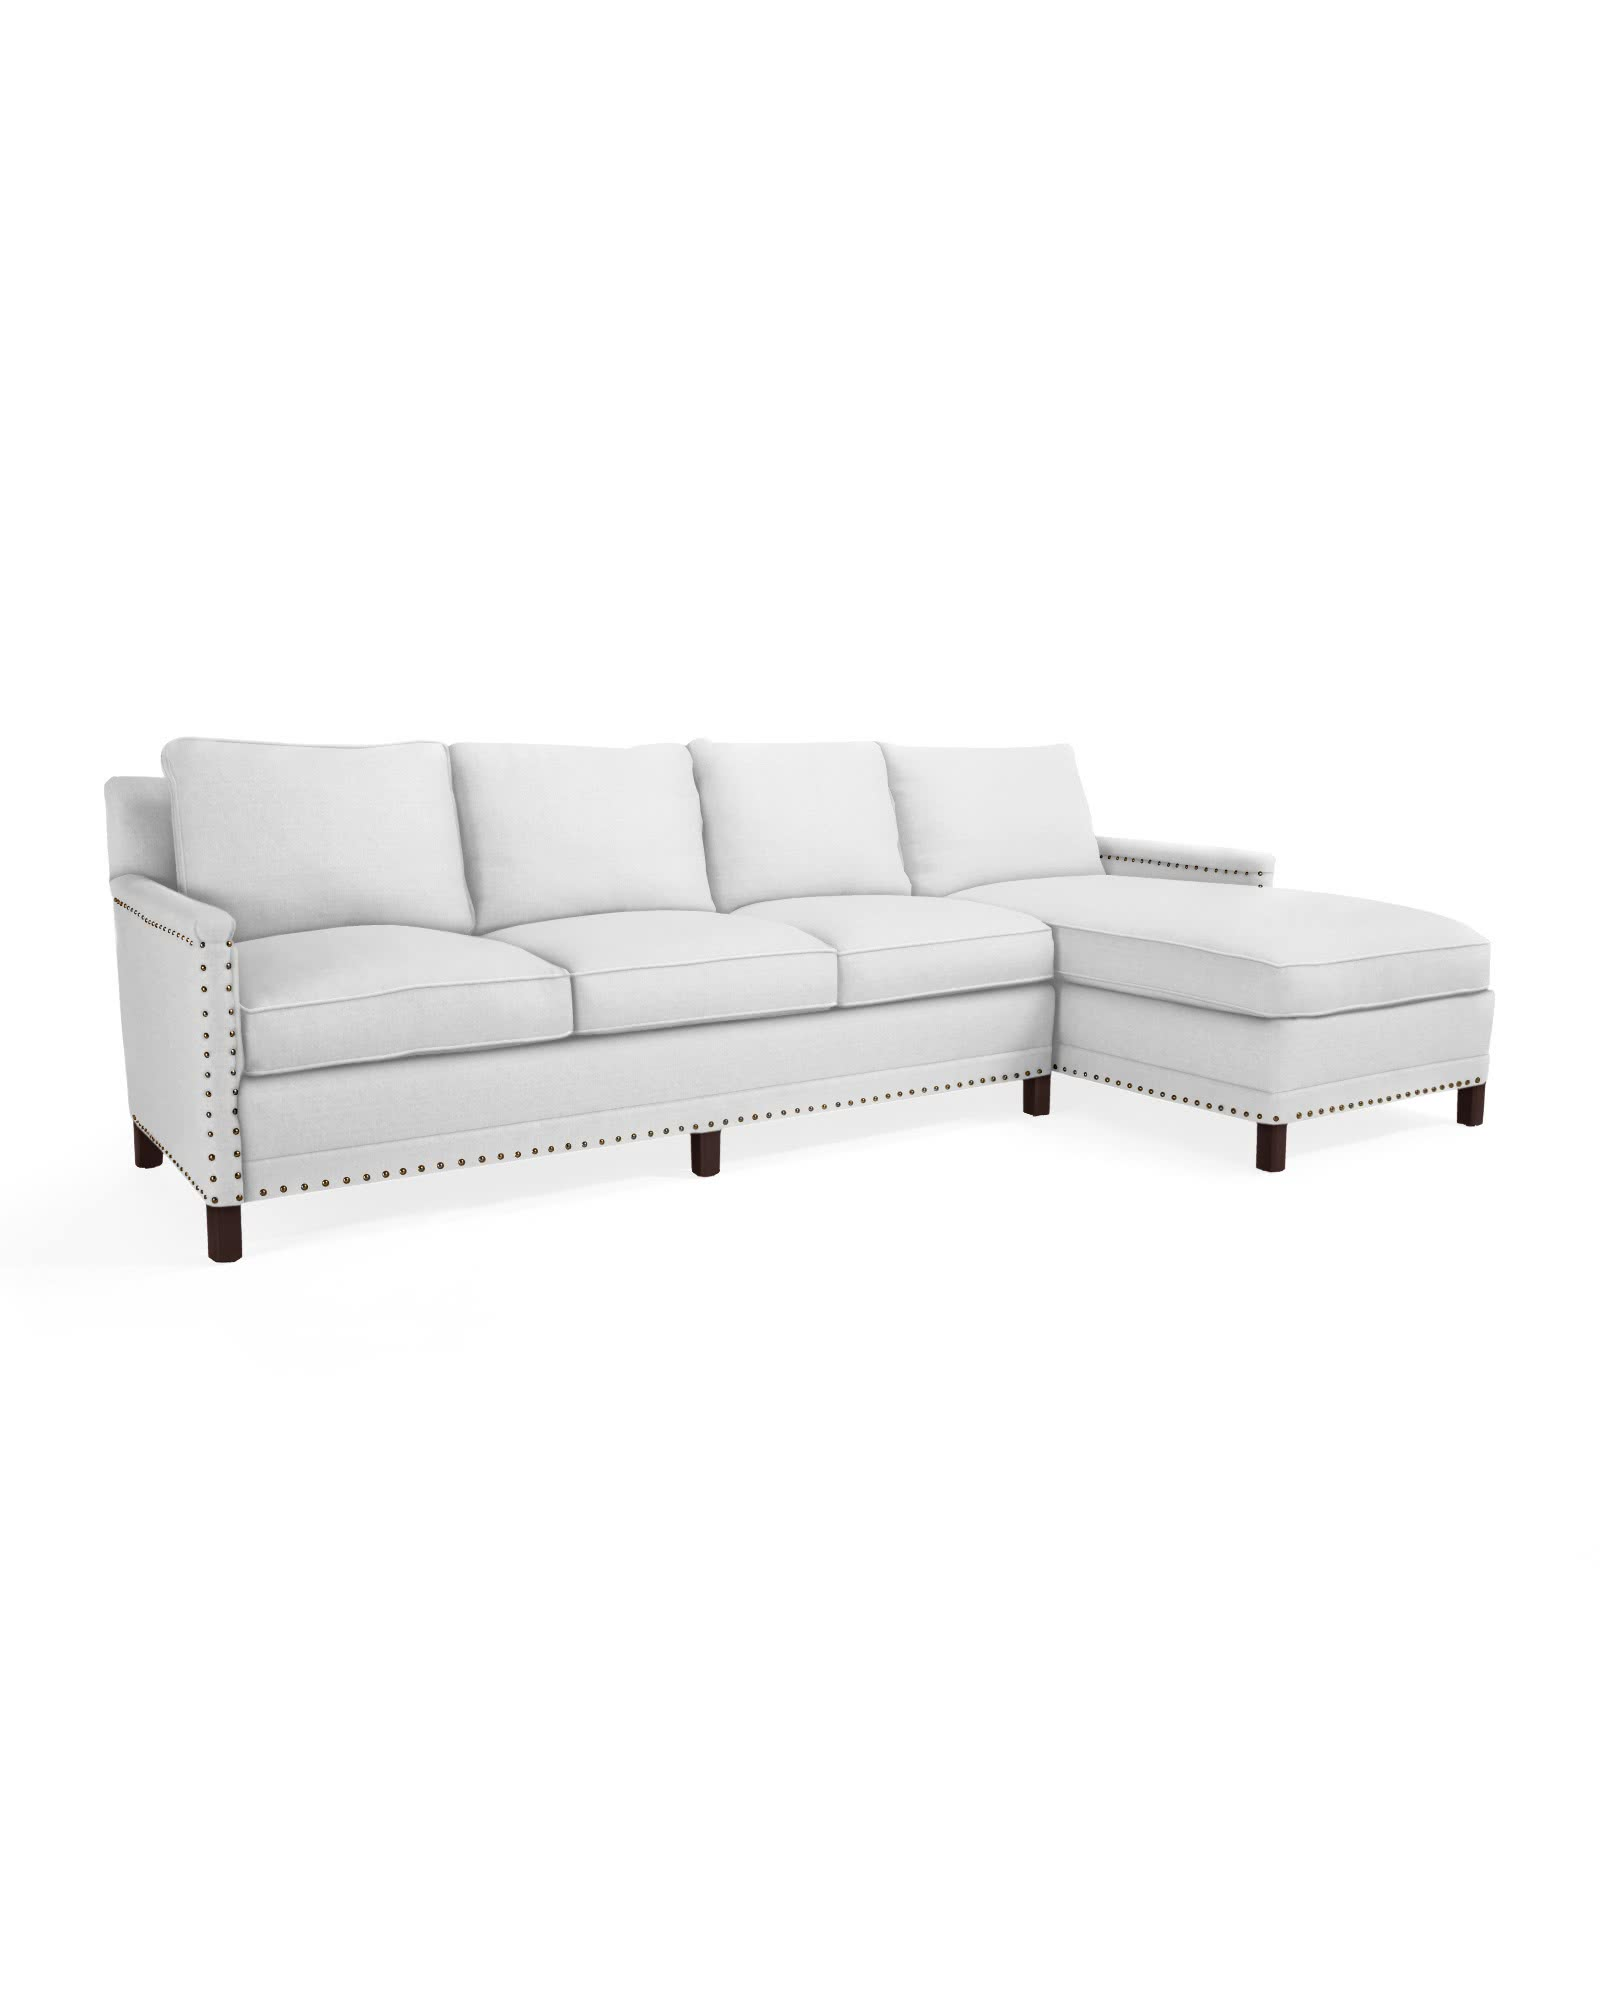 Spruce Street Right-Facing Chaise Sectional with Nailheads